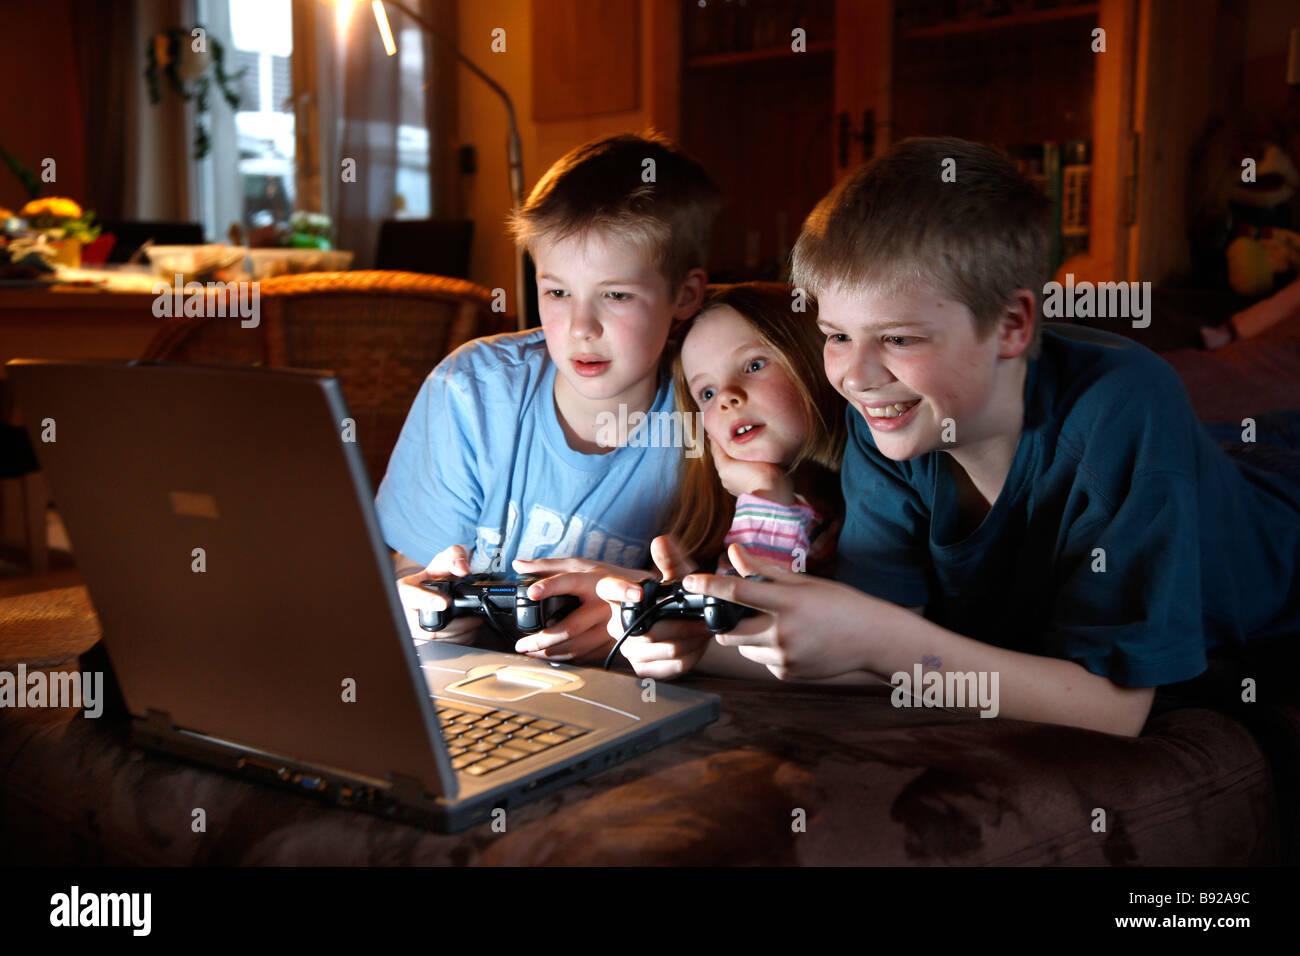 2 brothers and her sister, 7, 11 and 13 years old, playing a computer game, car race, at home. Stock Photo